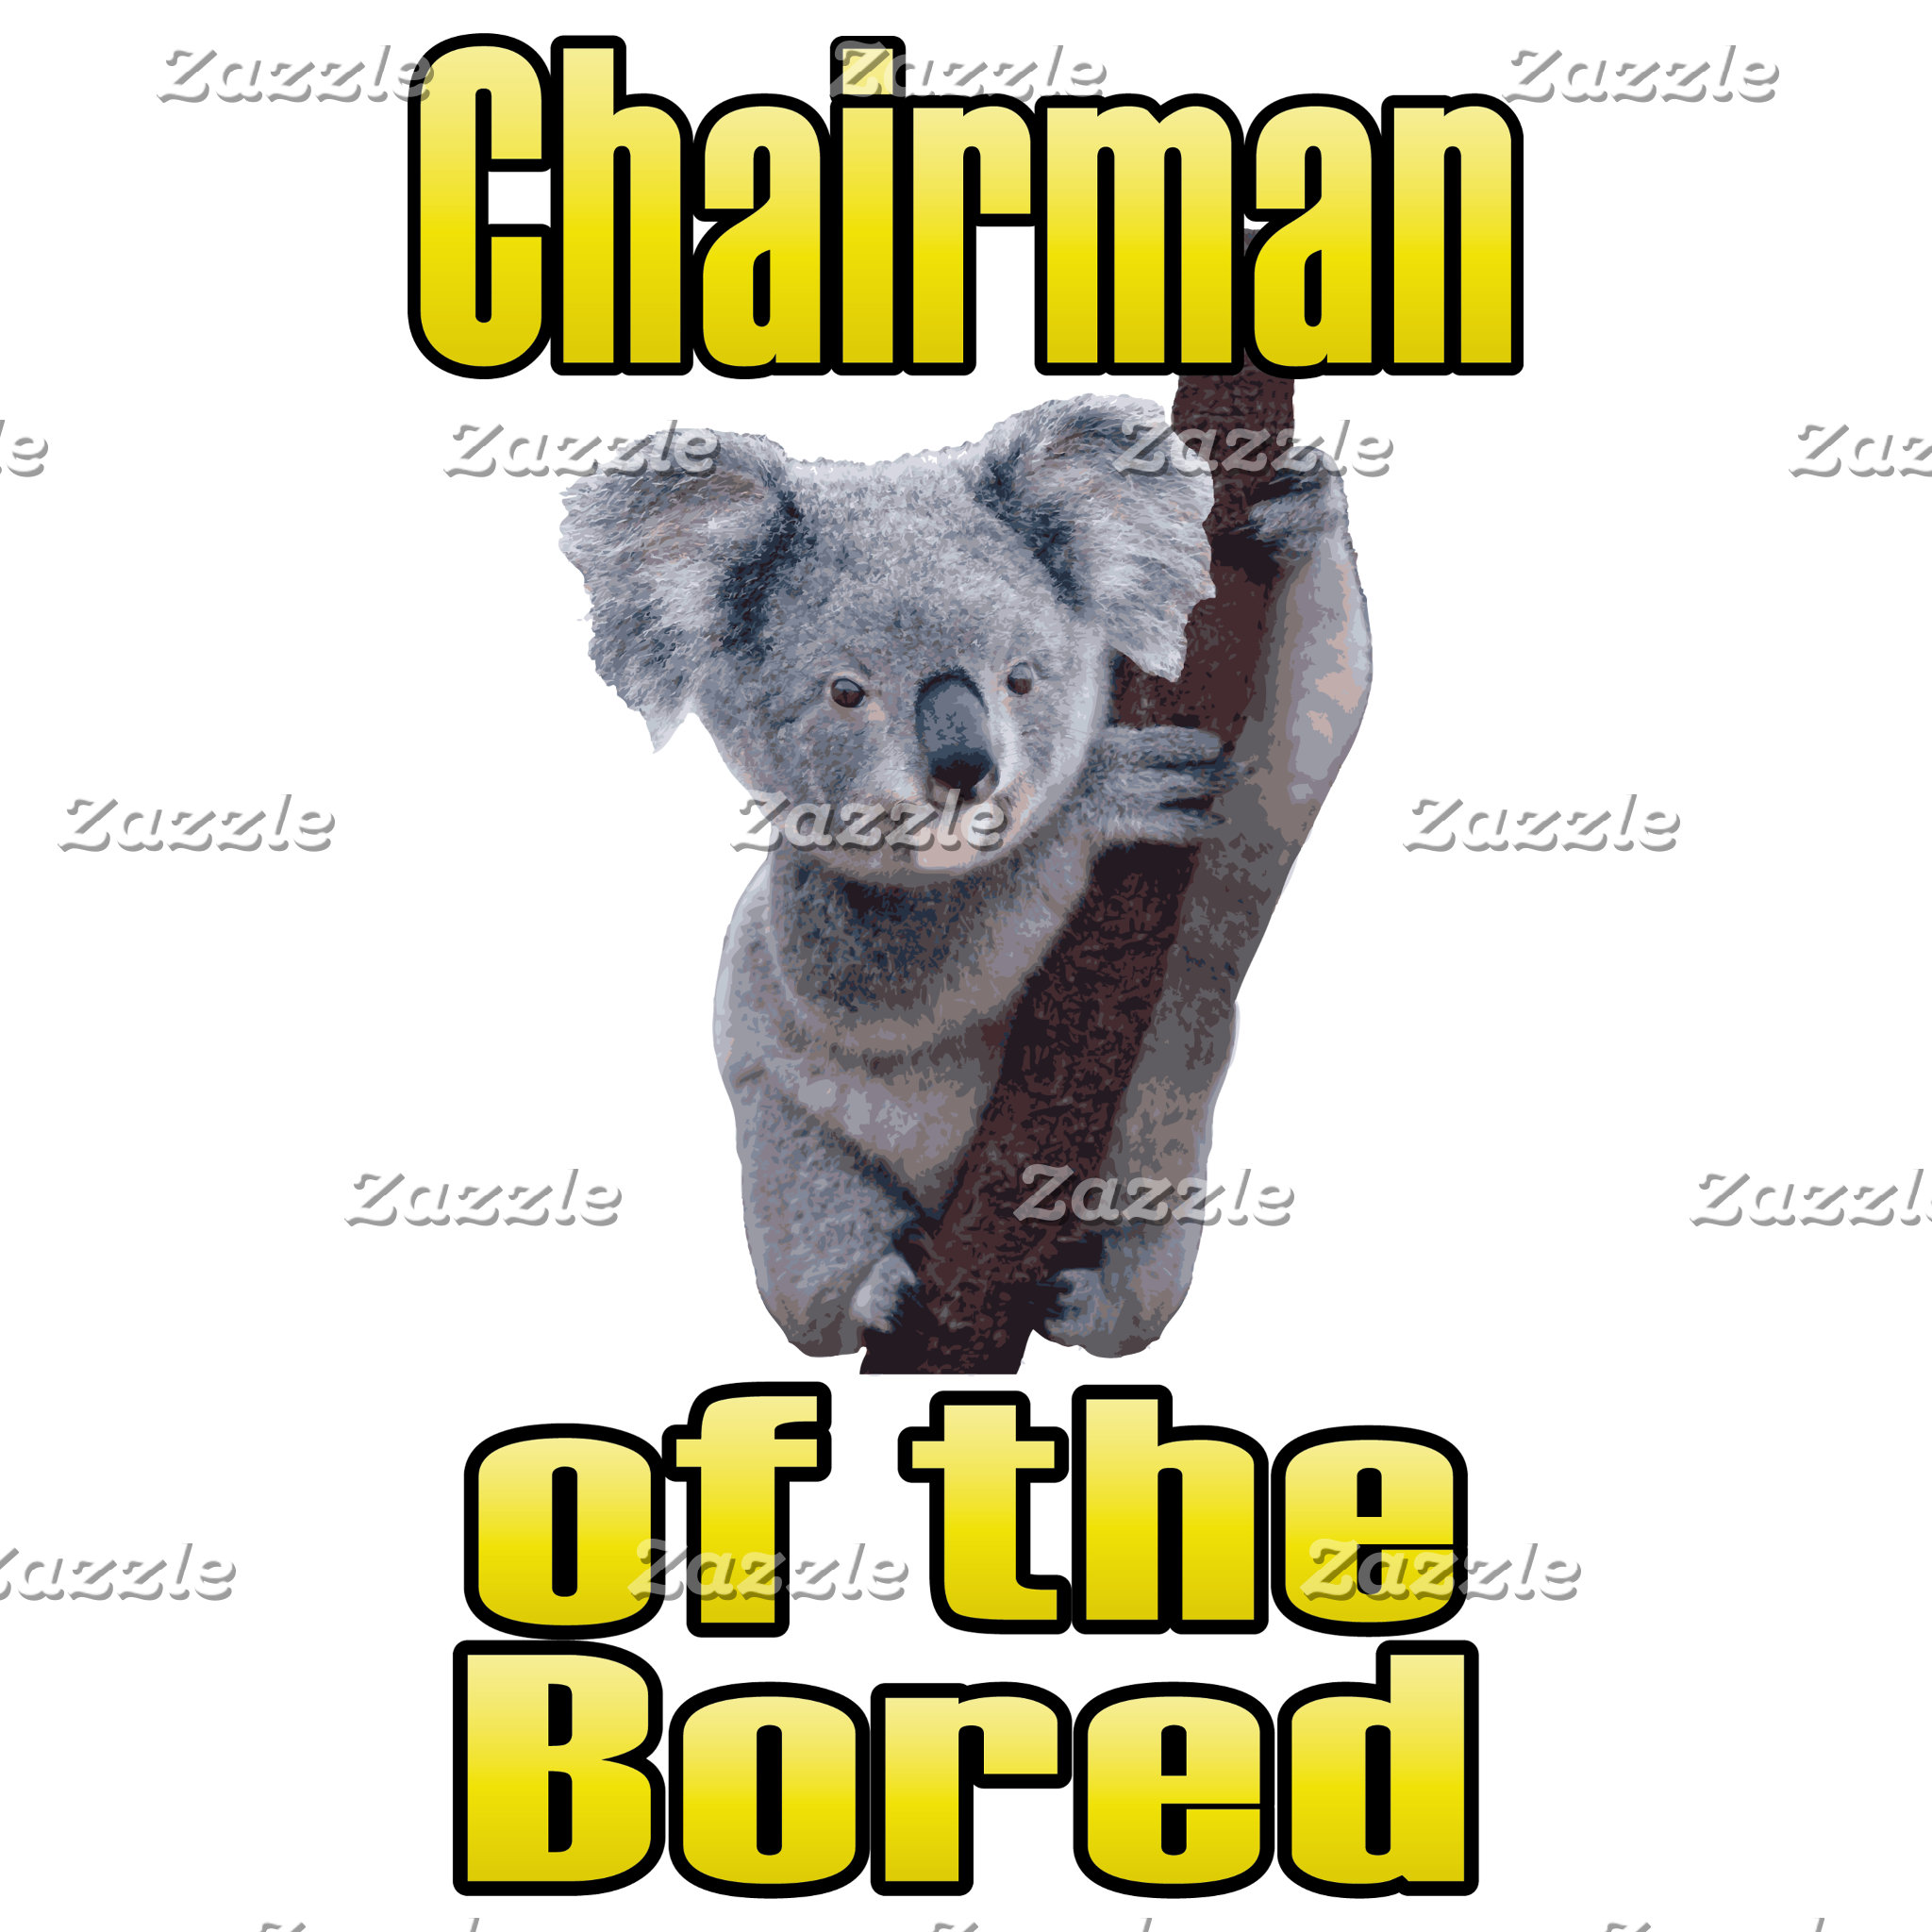 Chairman of the Bored